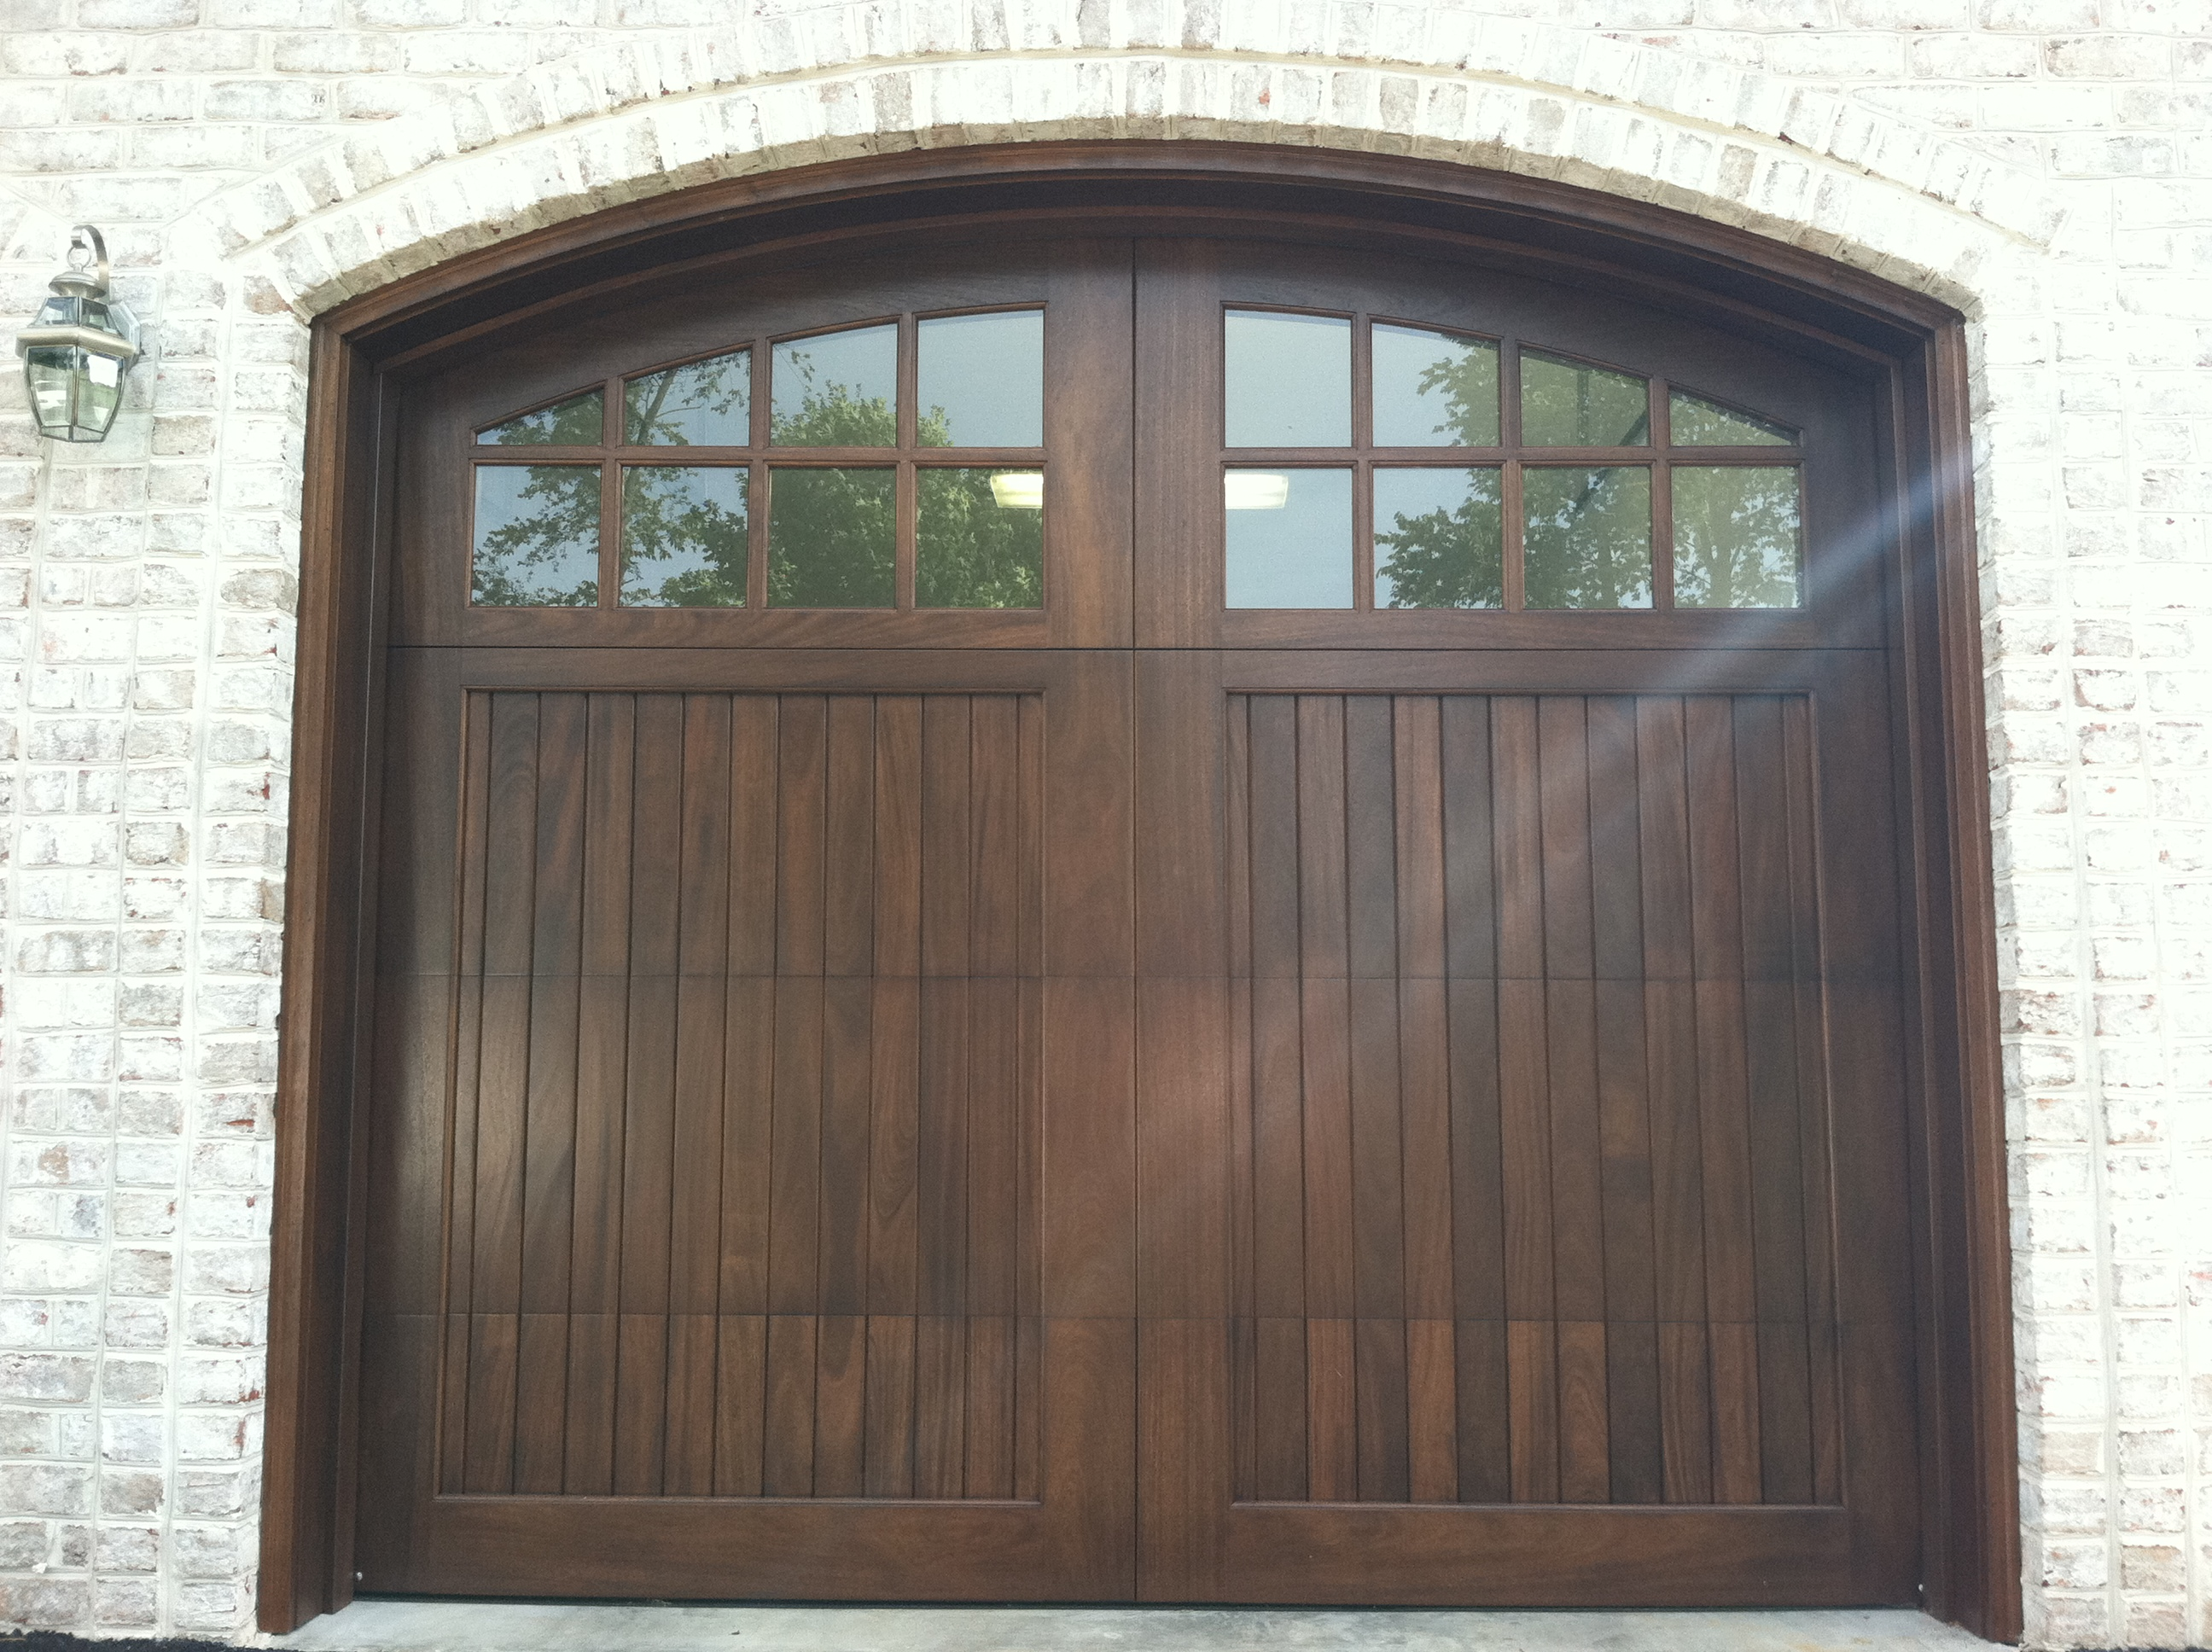 1936 #5F4E42 Wood Garage Doors And Carriage Doors Clearville Pennsylvania wallpaper Doors And Garage Doors 37152592